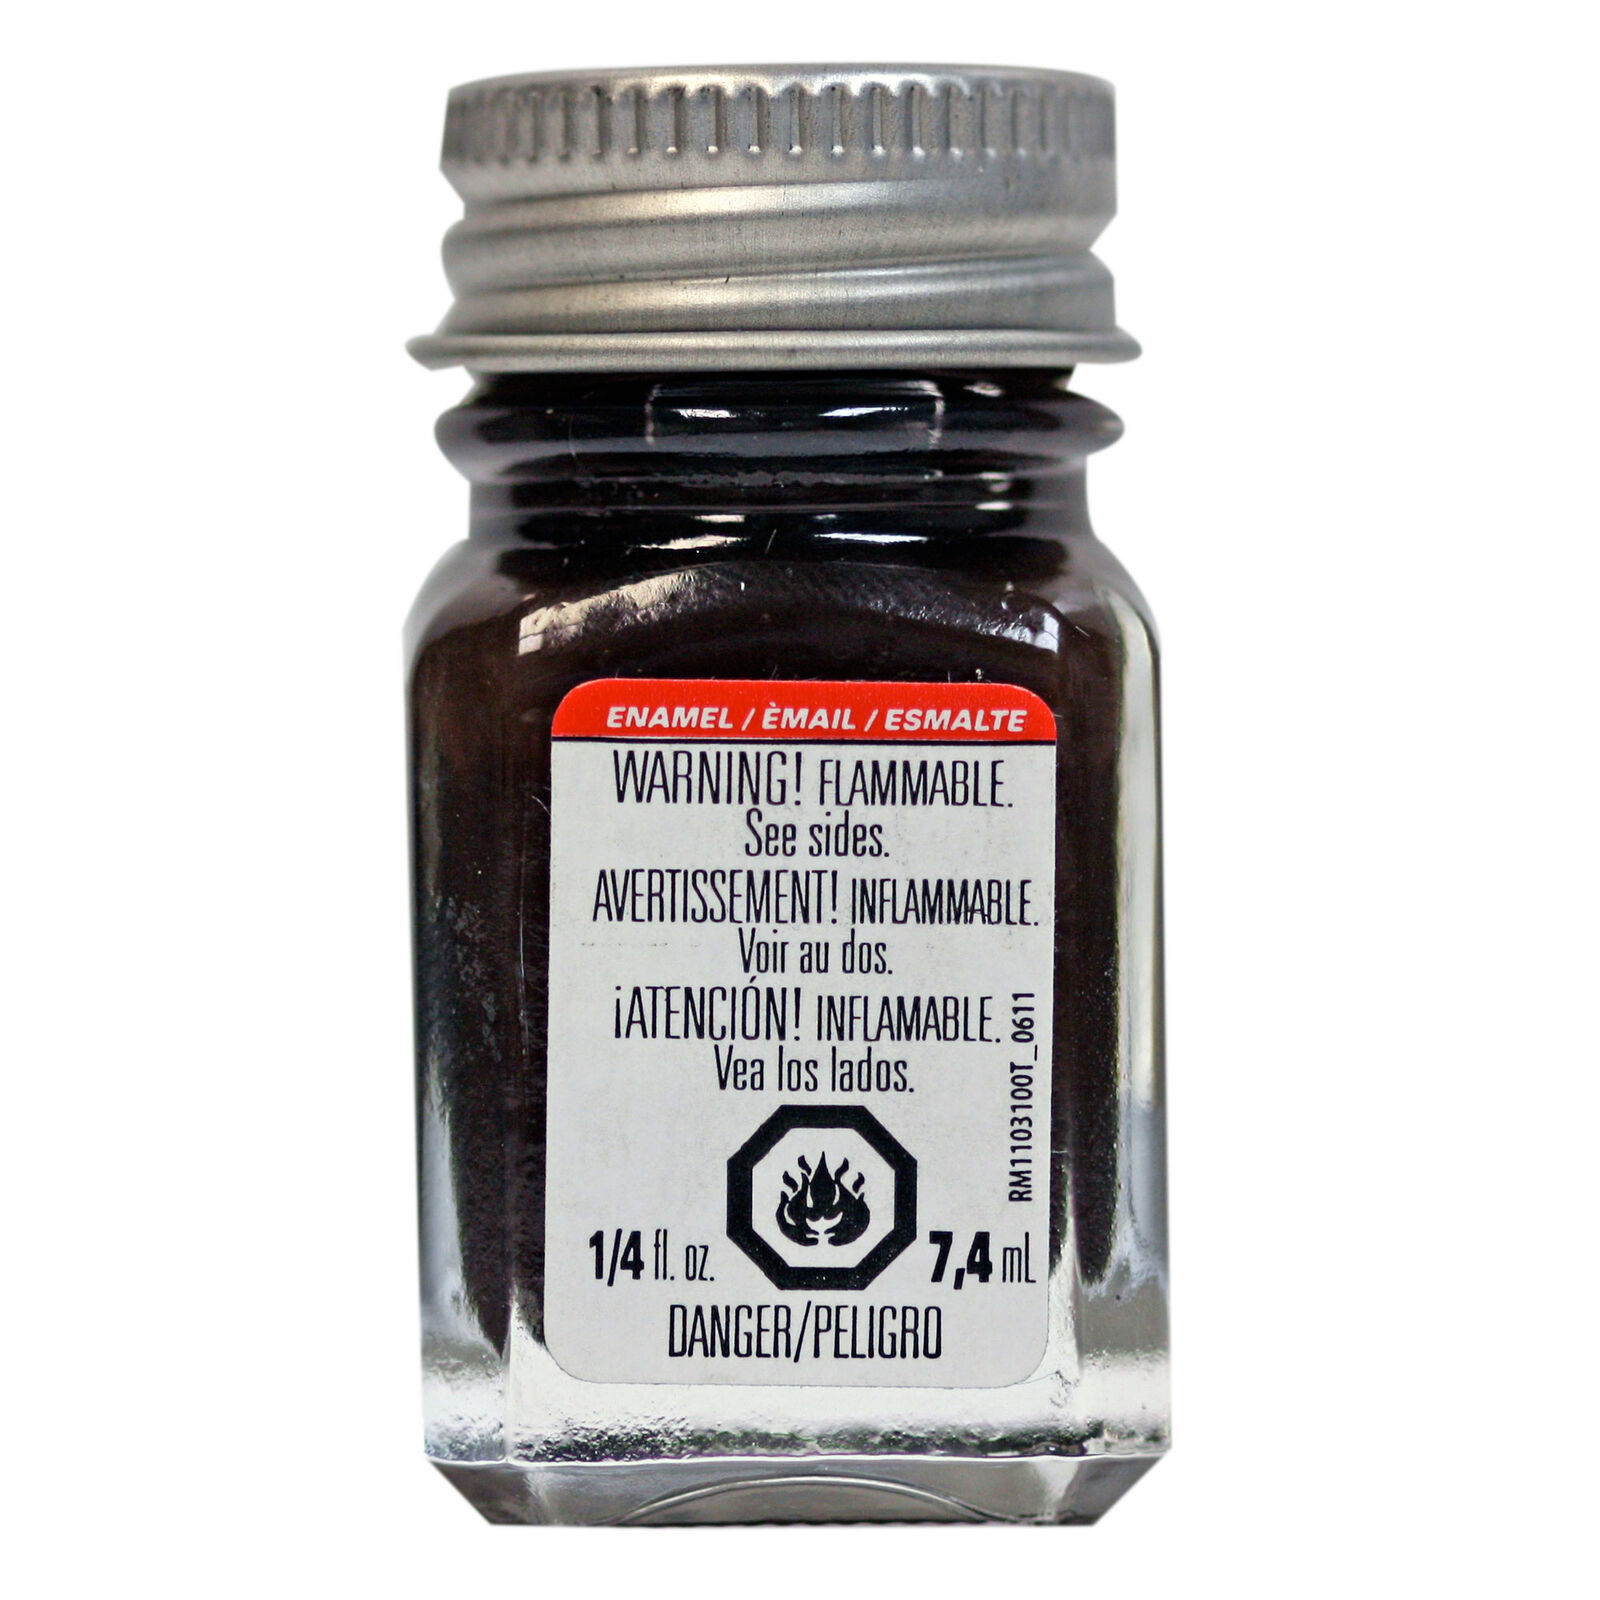 Enamel 1/4 oz Rubber